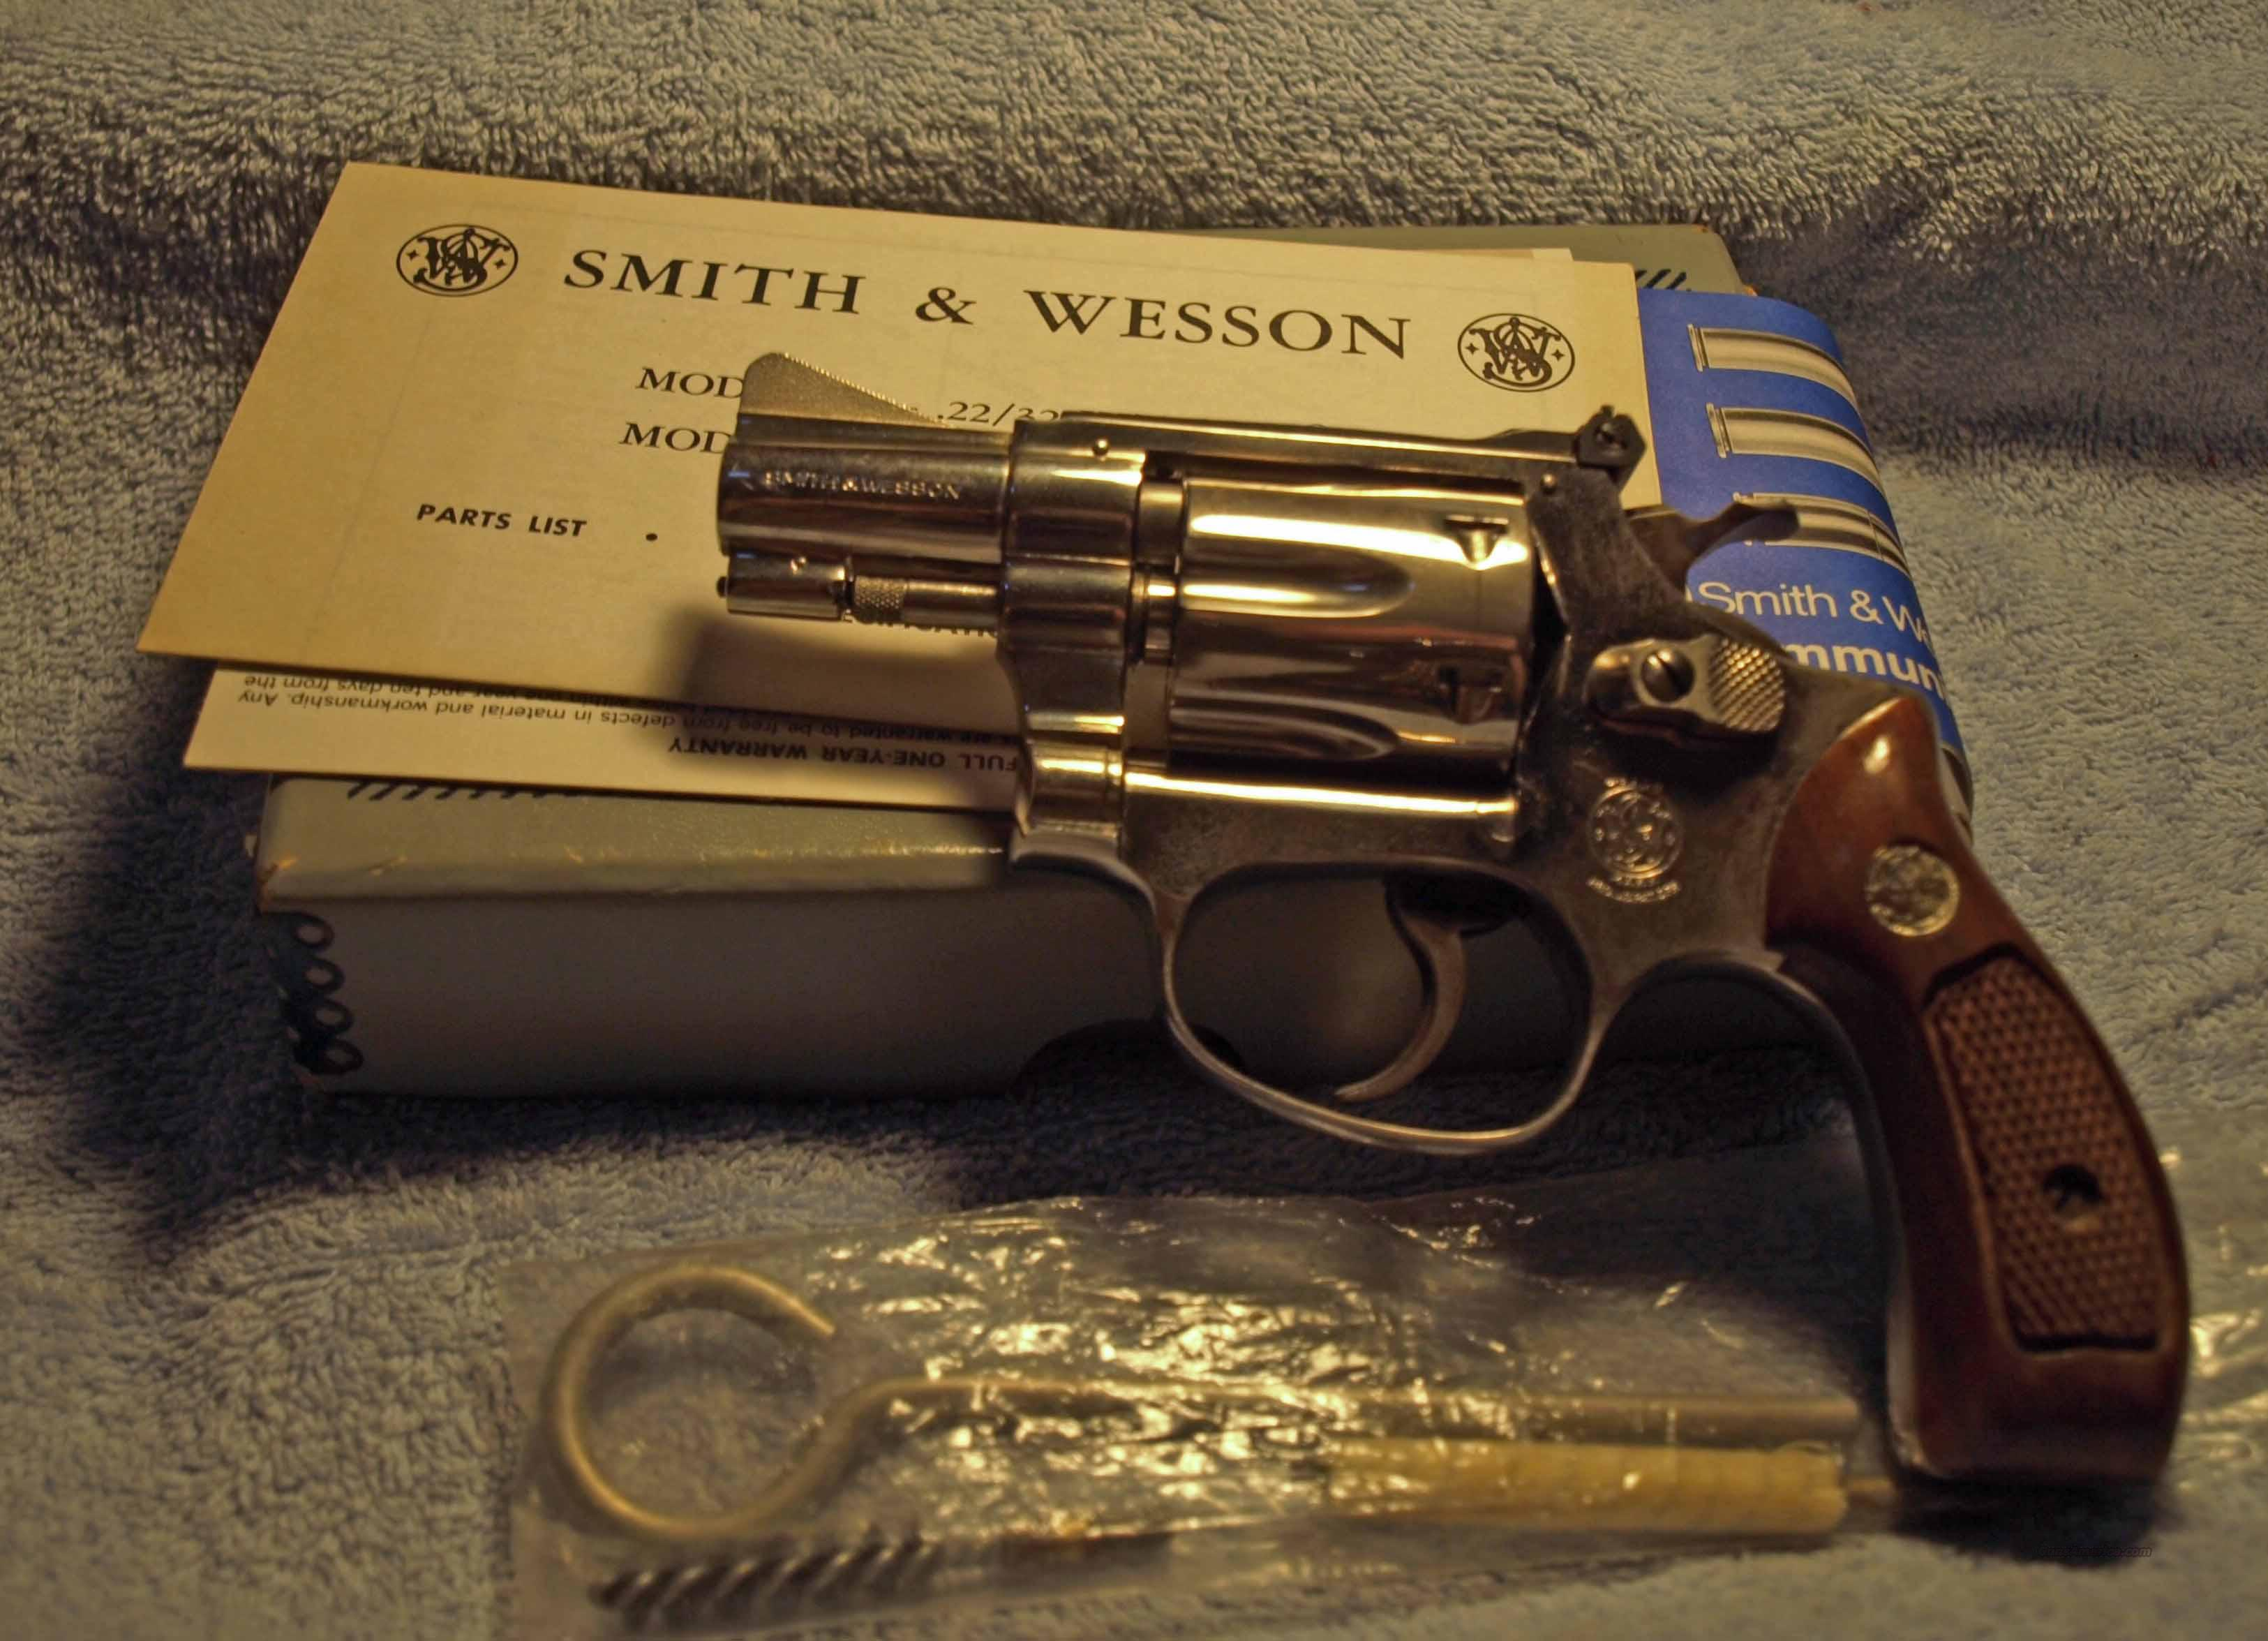 S&W Kit Gun Model 34-1  Guns > Pistols > Smith & Wesson Revolvers > Pocket Pistols